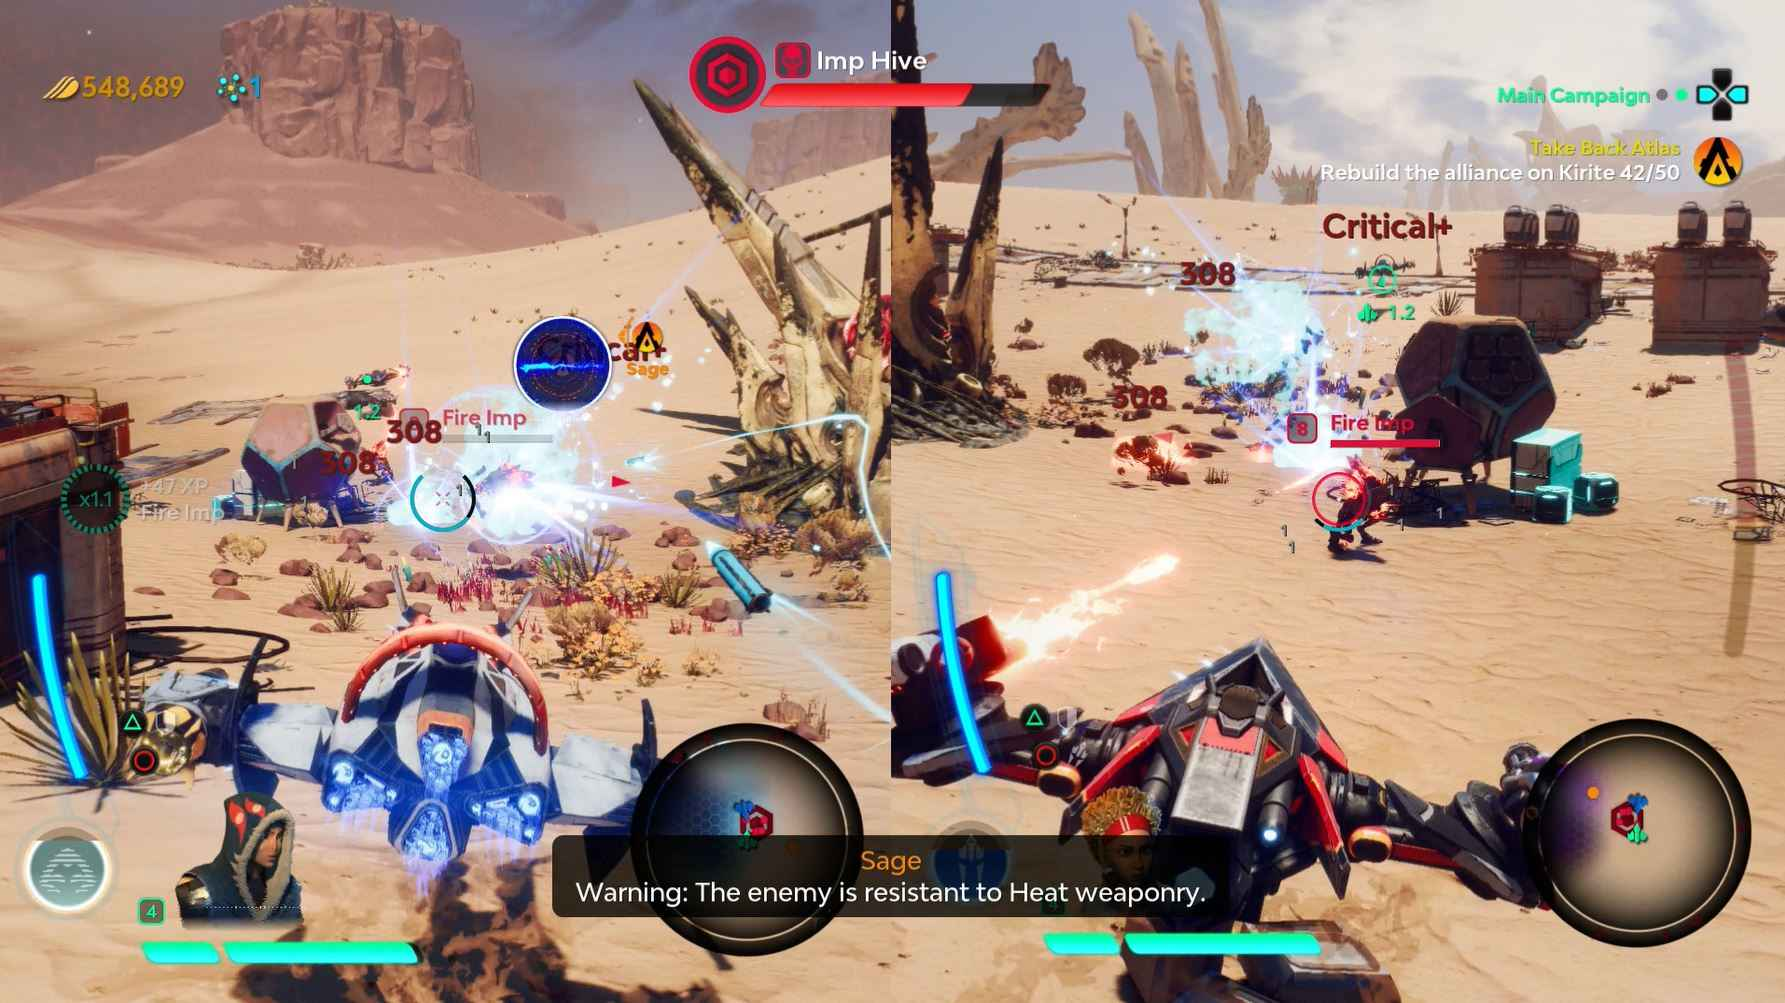 Starlink Battle For Atlus Review - CO-OP is also available in the game